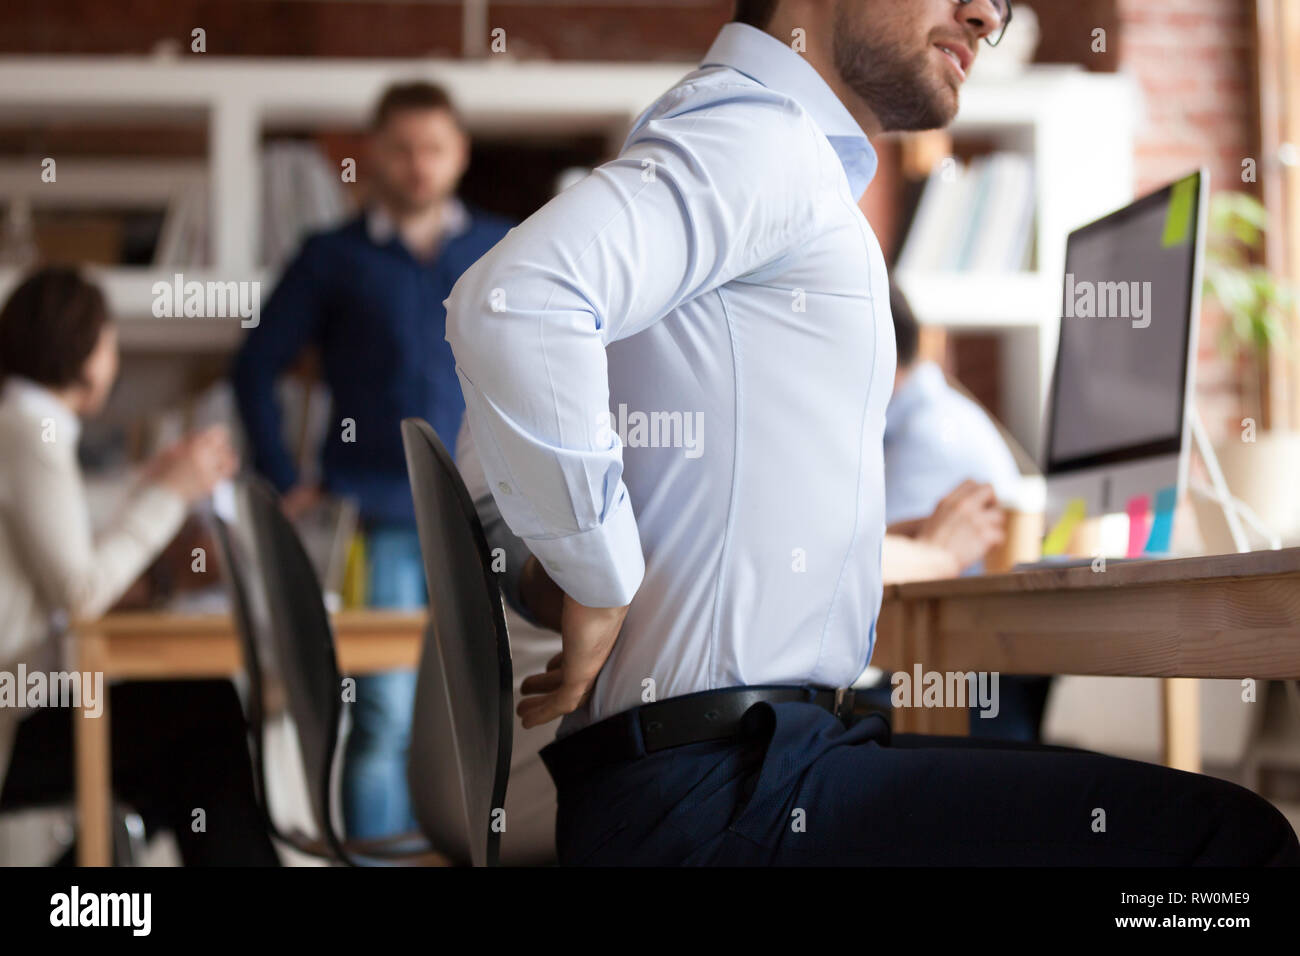 Businessman suffers from lower back pain sitting in shared office - Stock Image